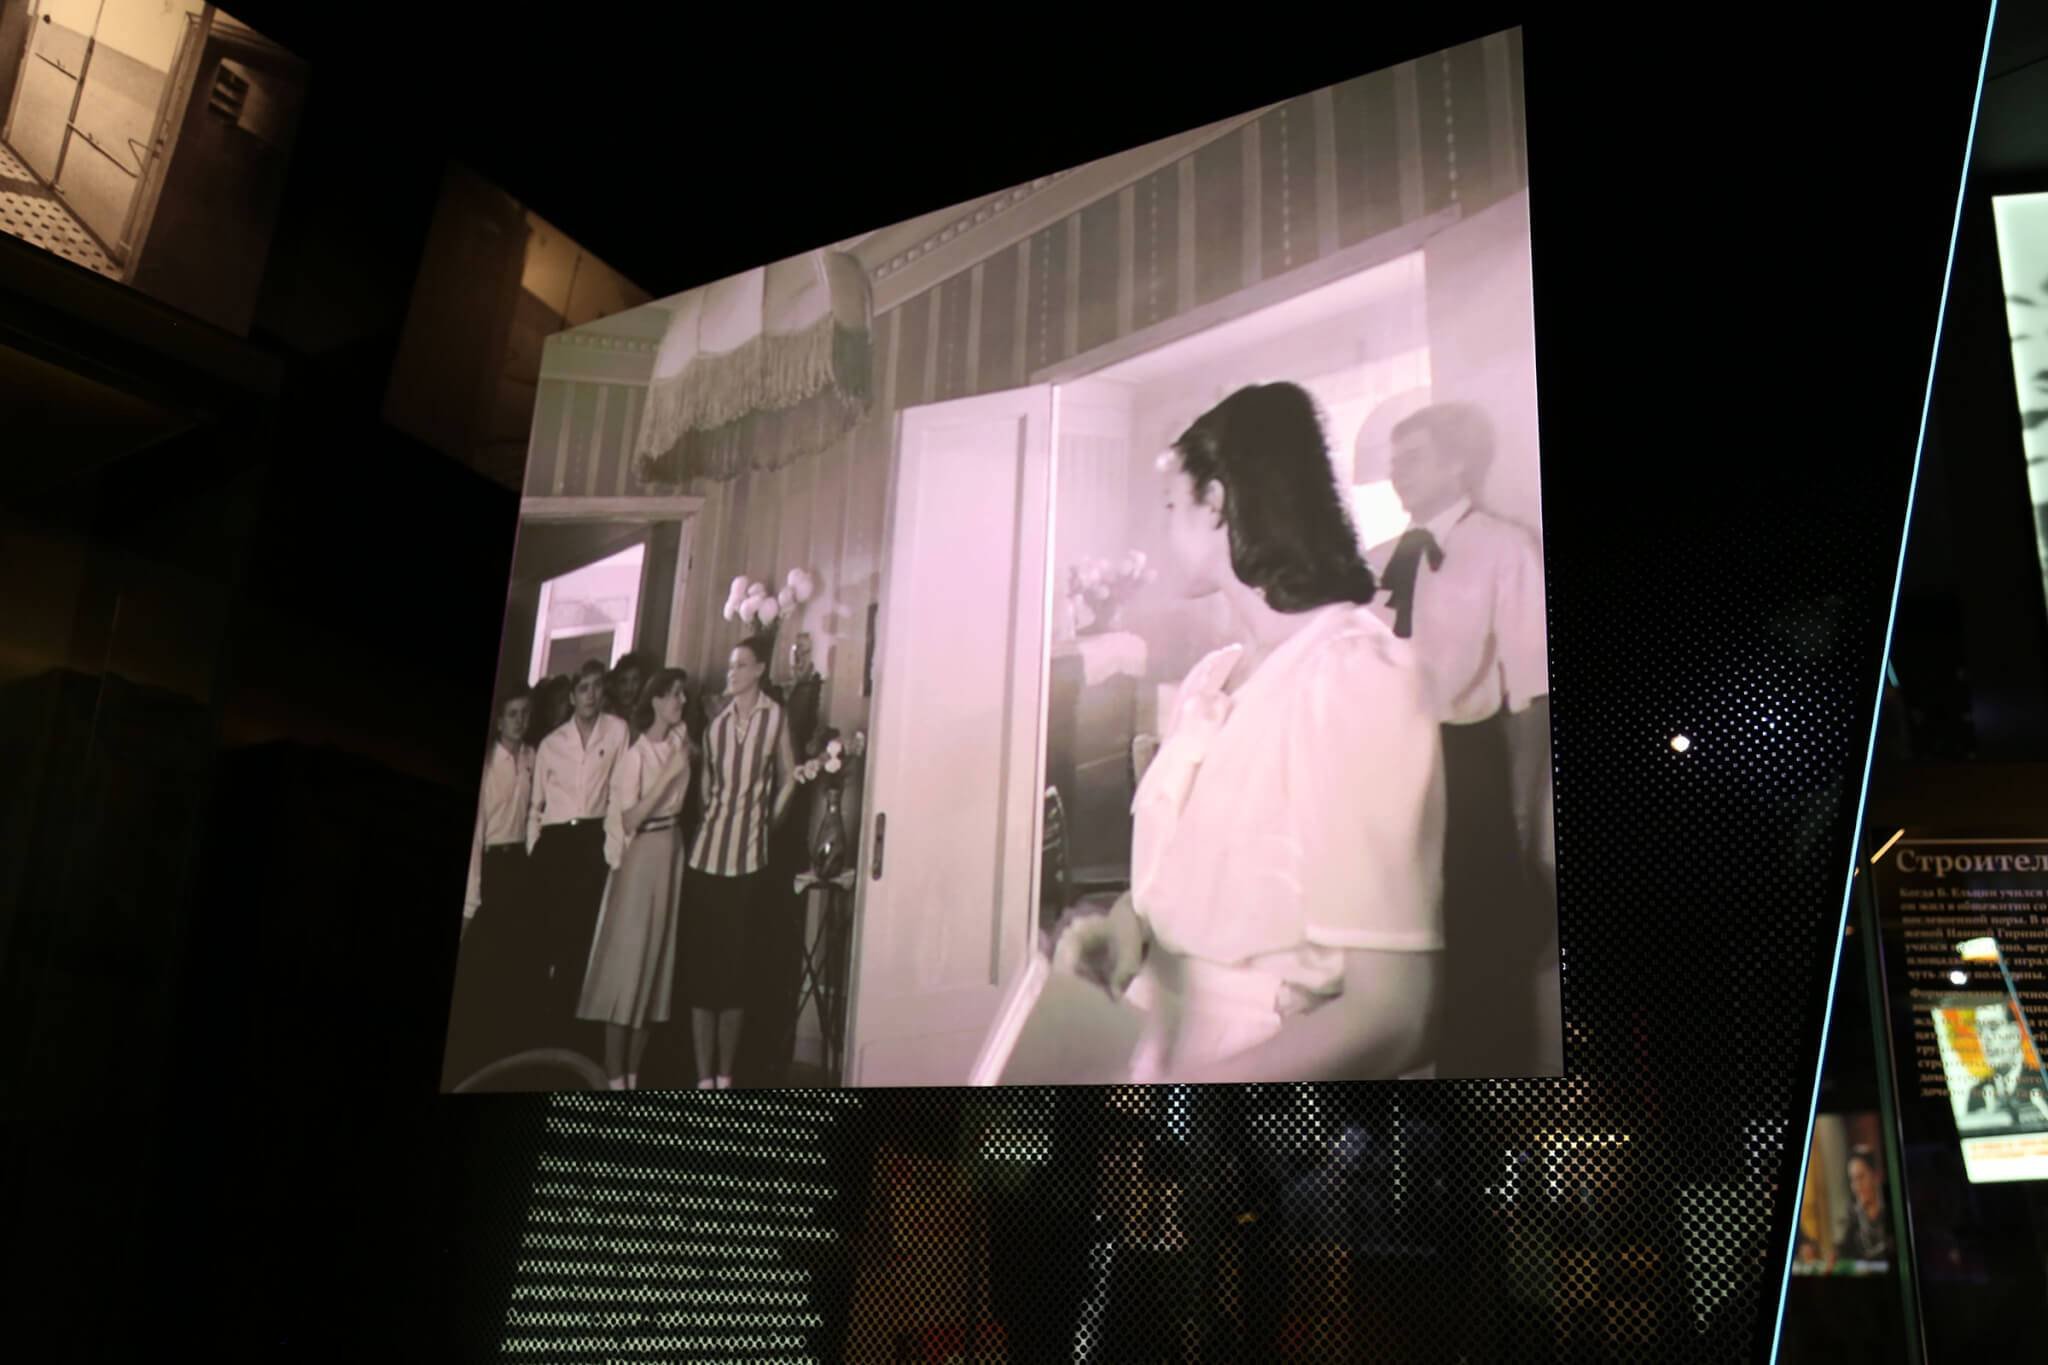 Each montage is projected onto a glass wall that separates the chapters but propels the visitor to the next section.